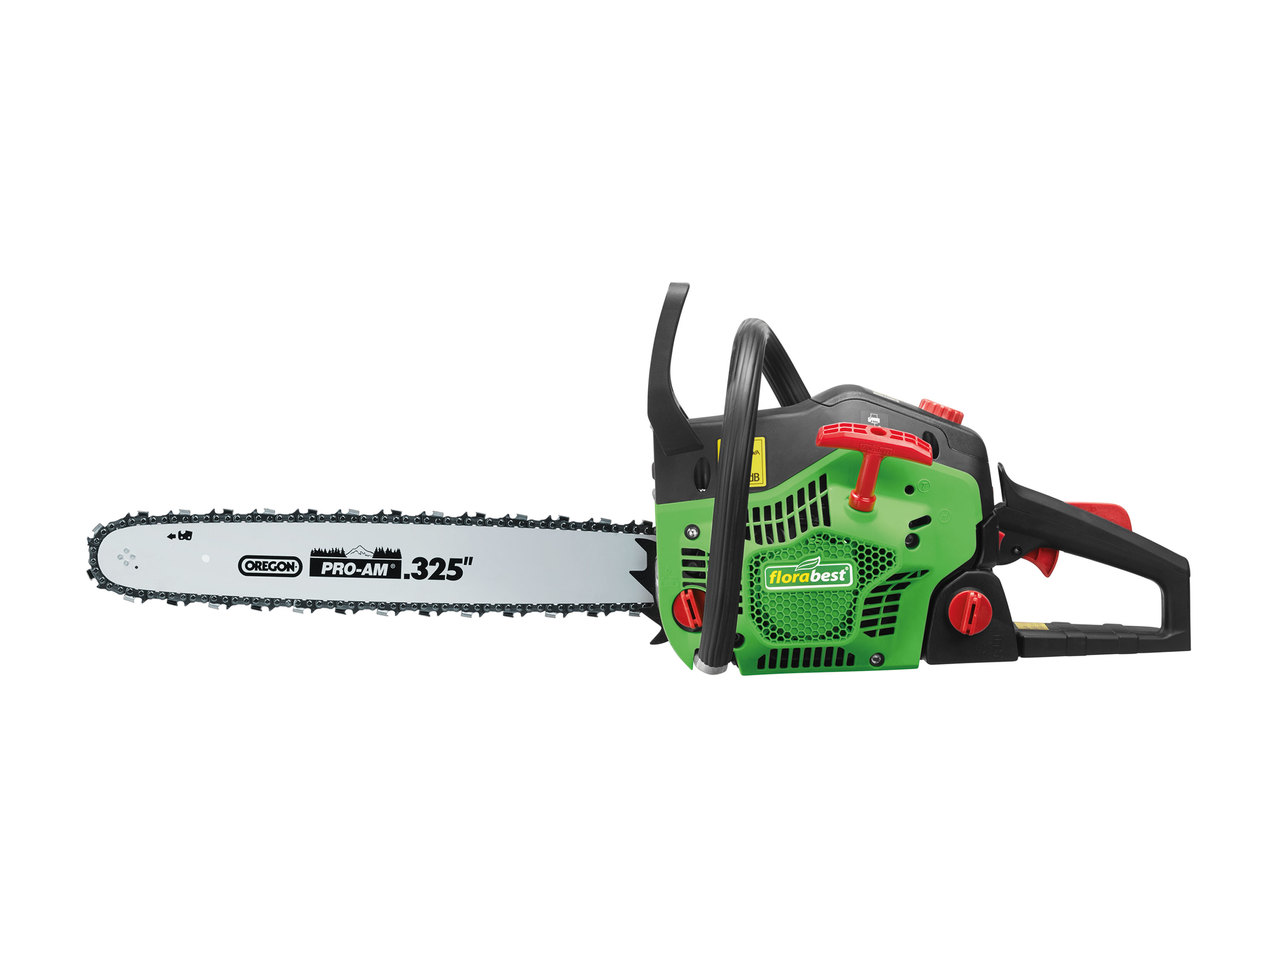 florabest petrol chainsaw1 - lidl — great britain - specials archive